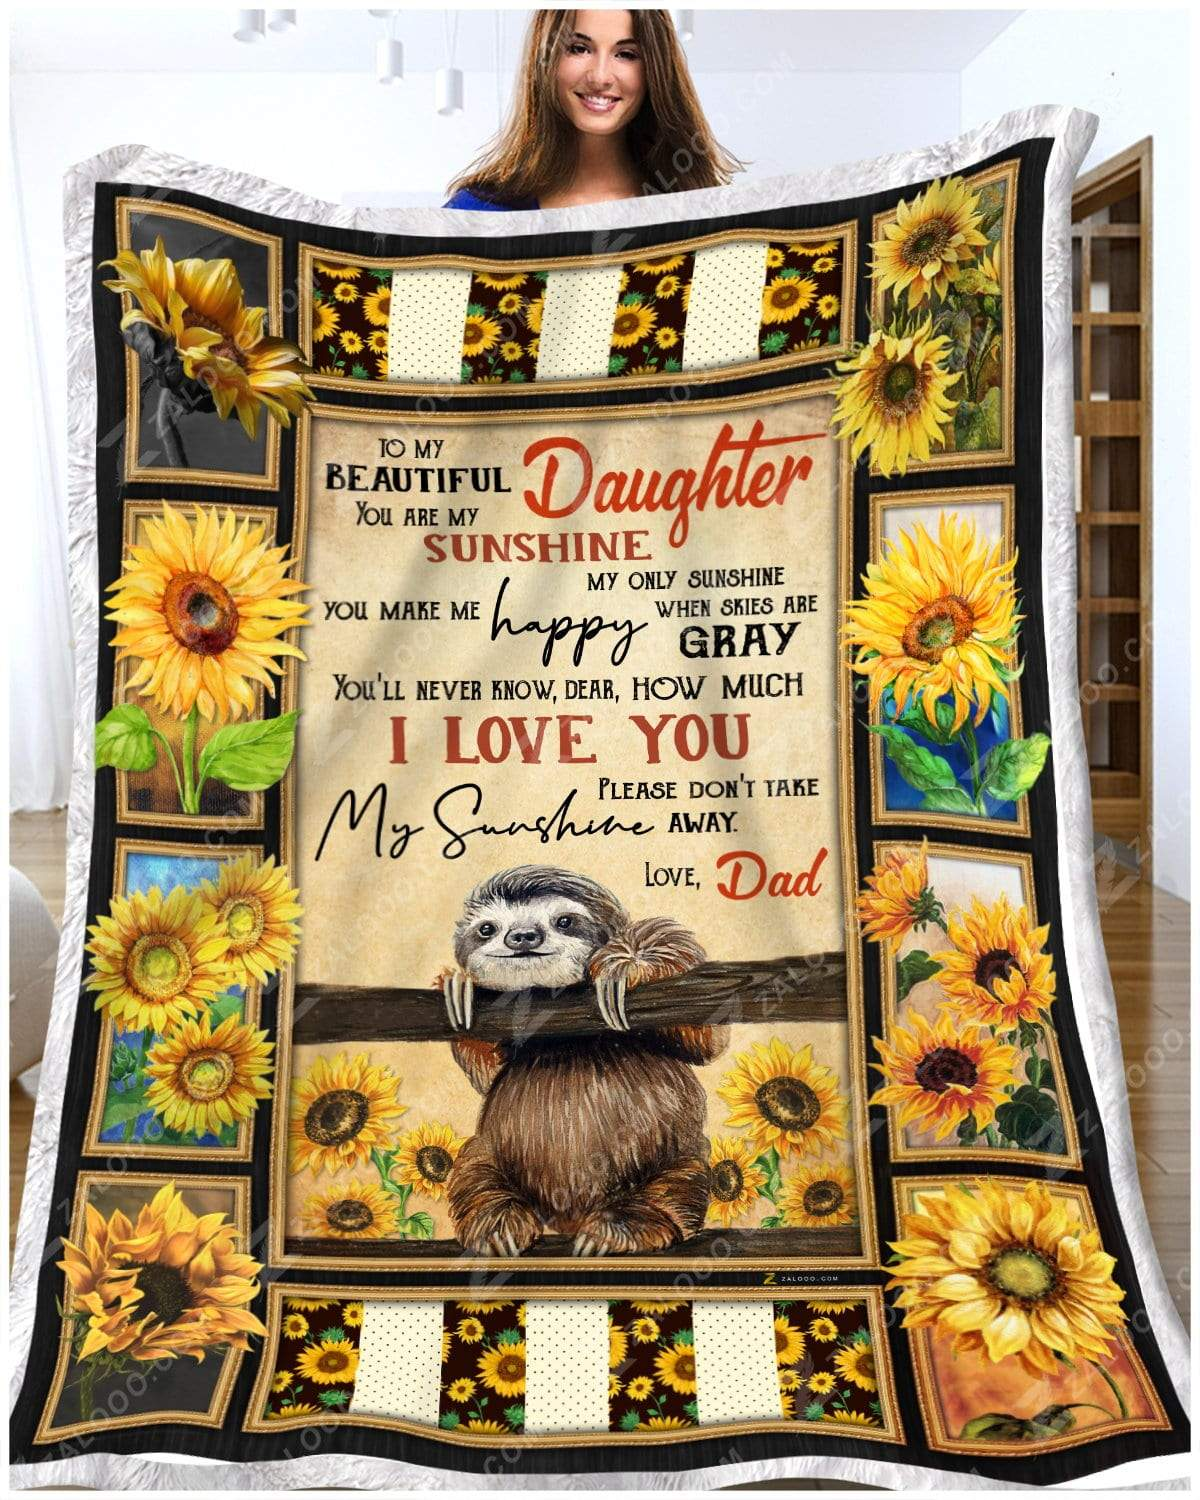 Sloth - You Are My Sunshine - Love Dad Quilt Blanket EP2263